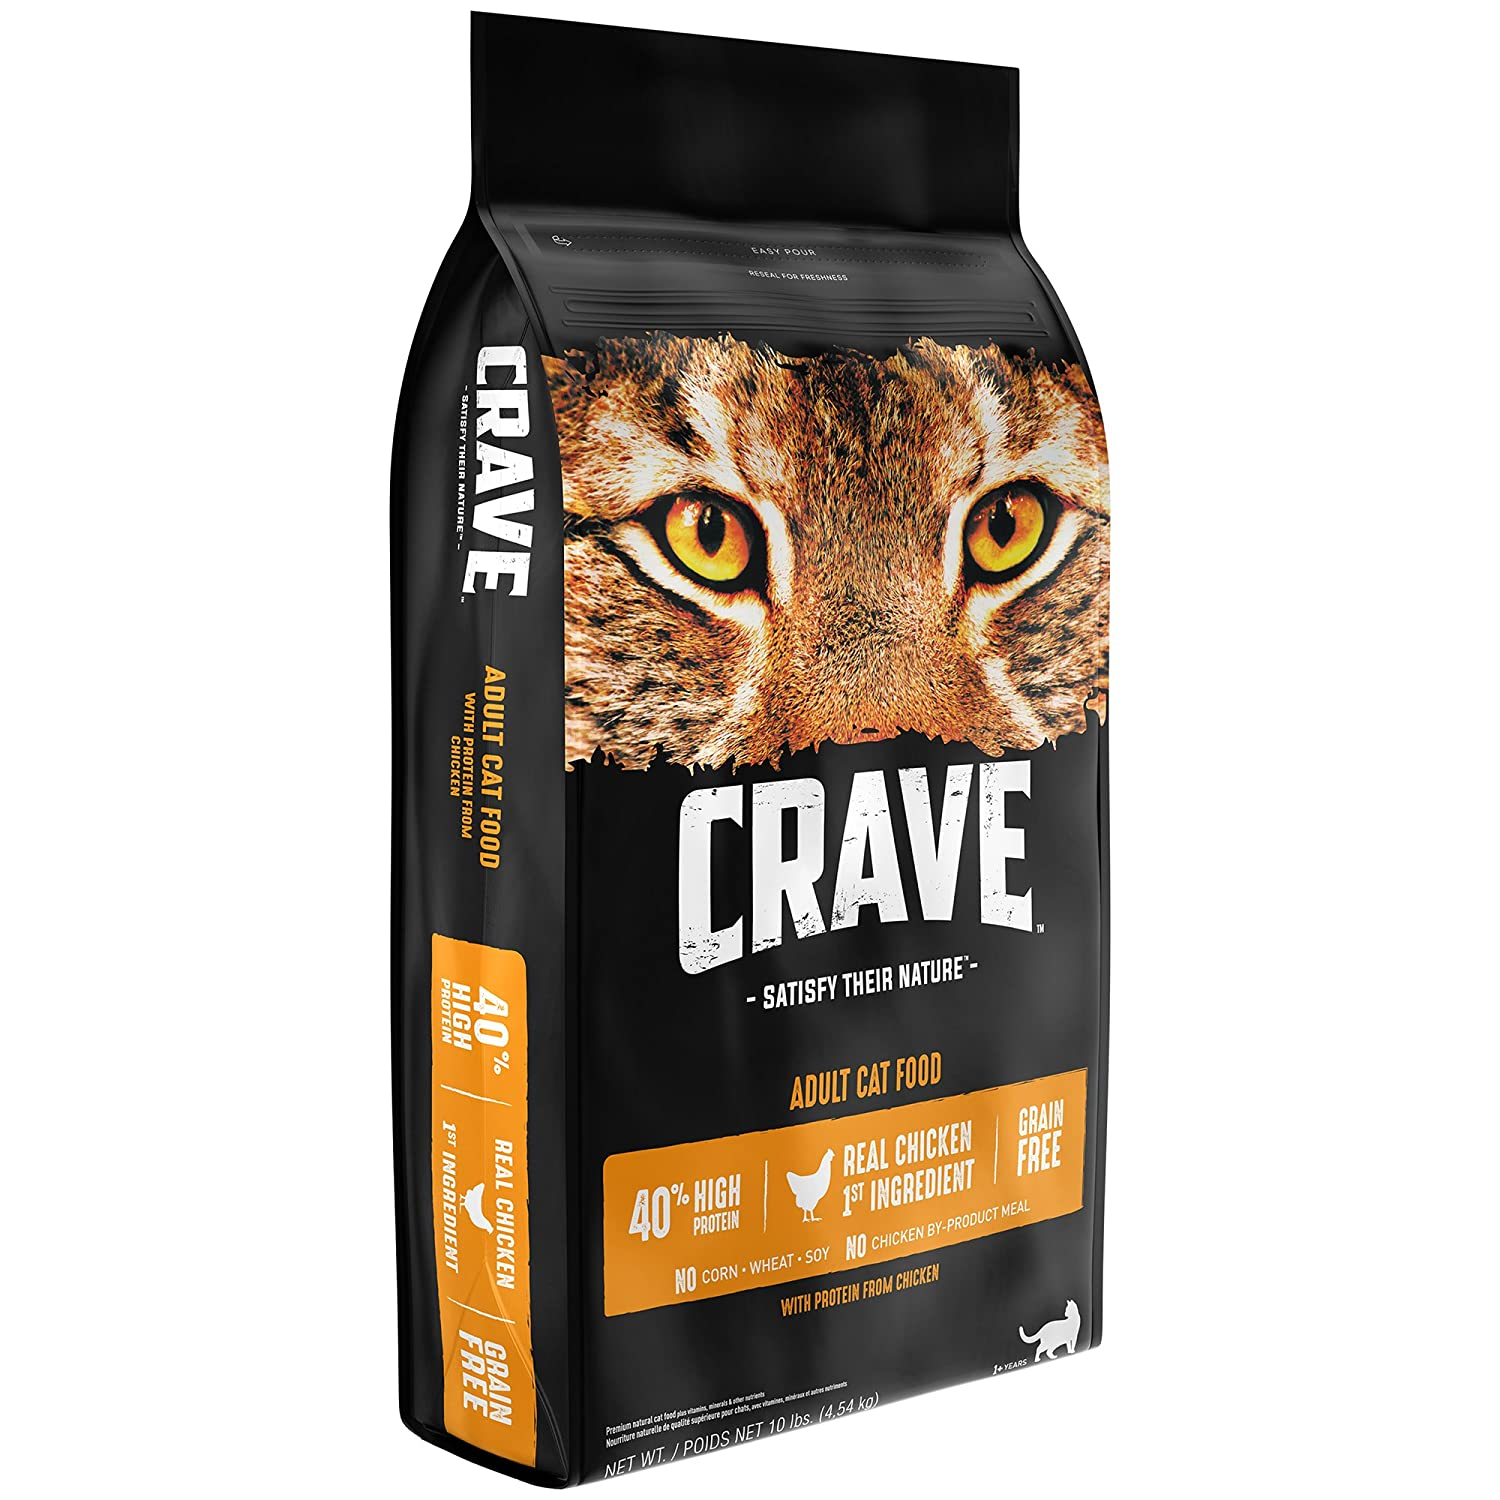 Crave Grain Free With Protein From Chicken Dry Adult Cat Food, 10 Pound Bag